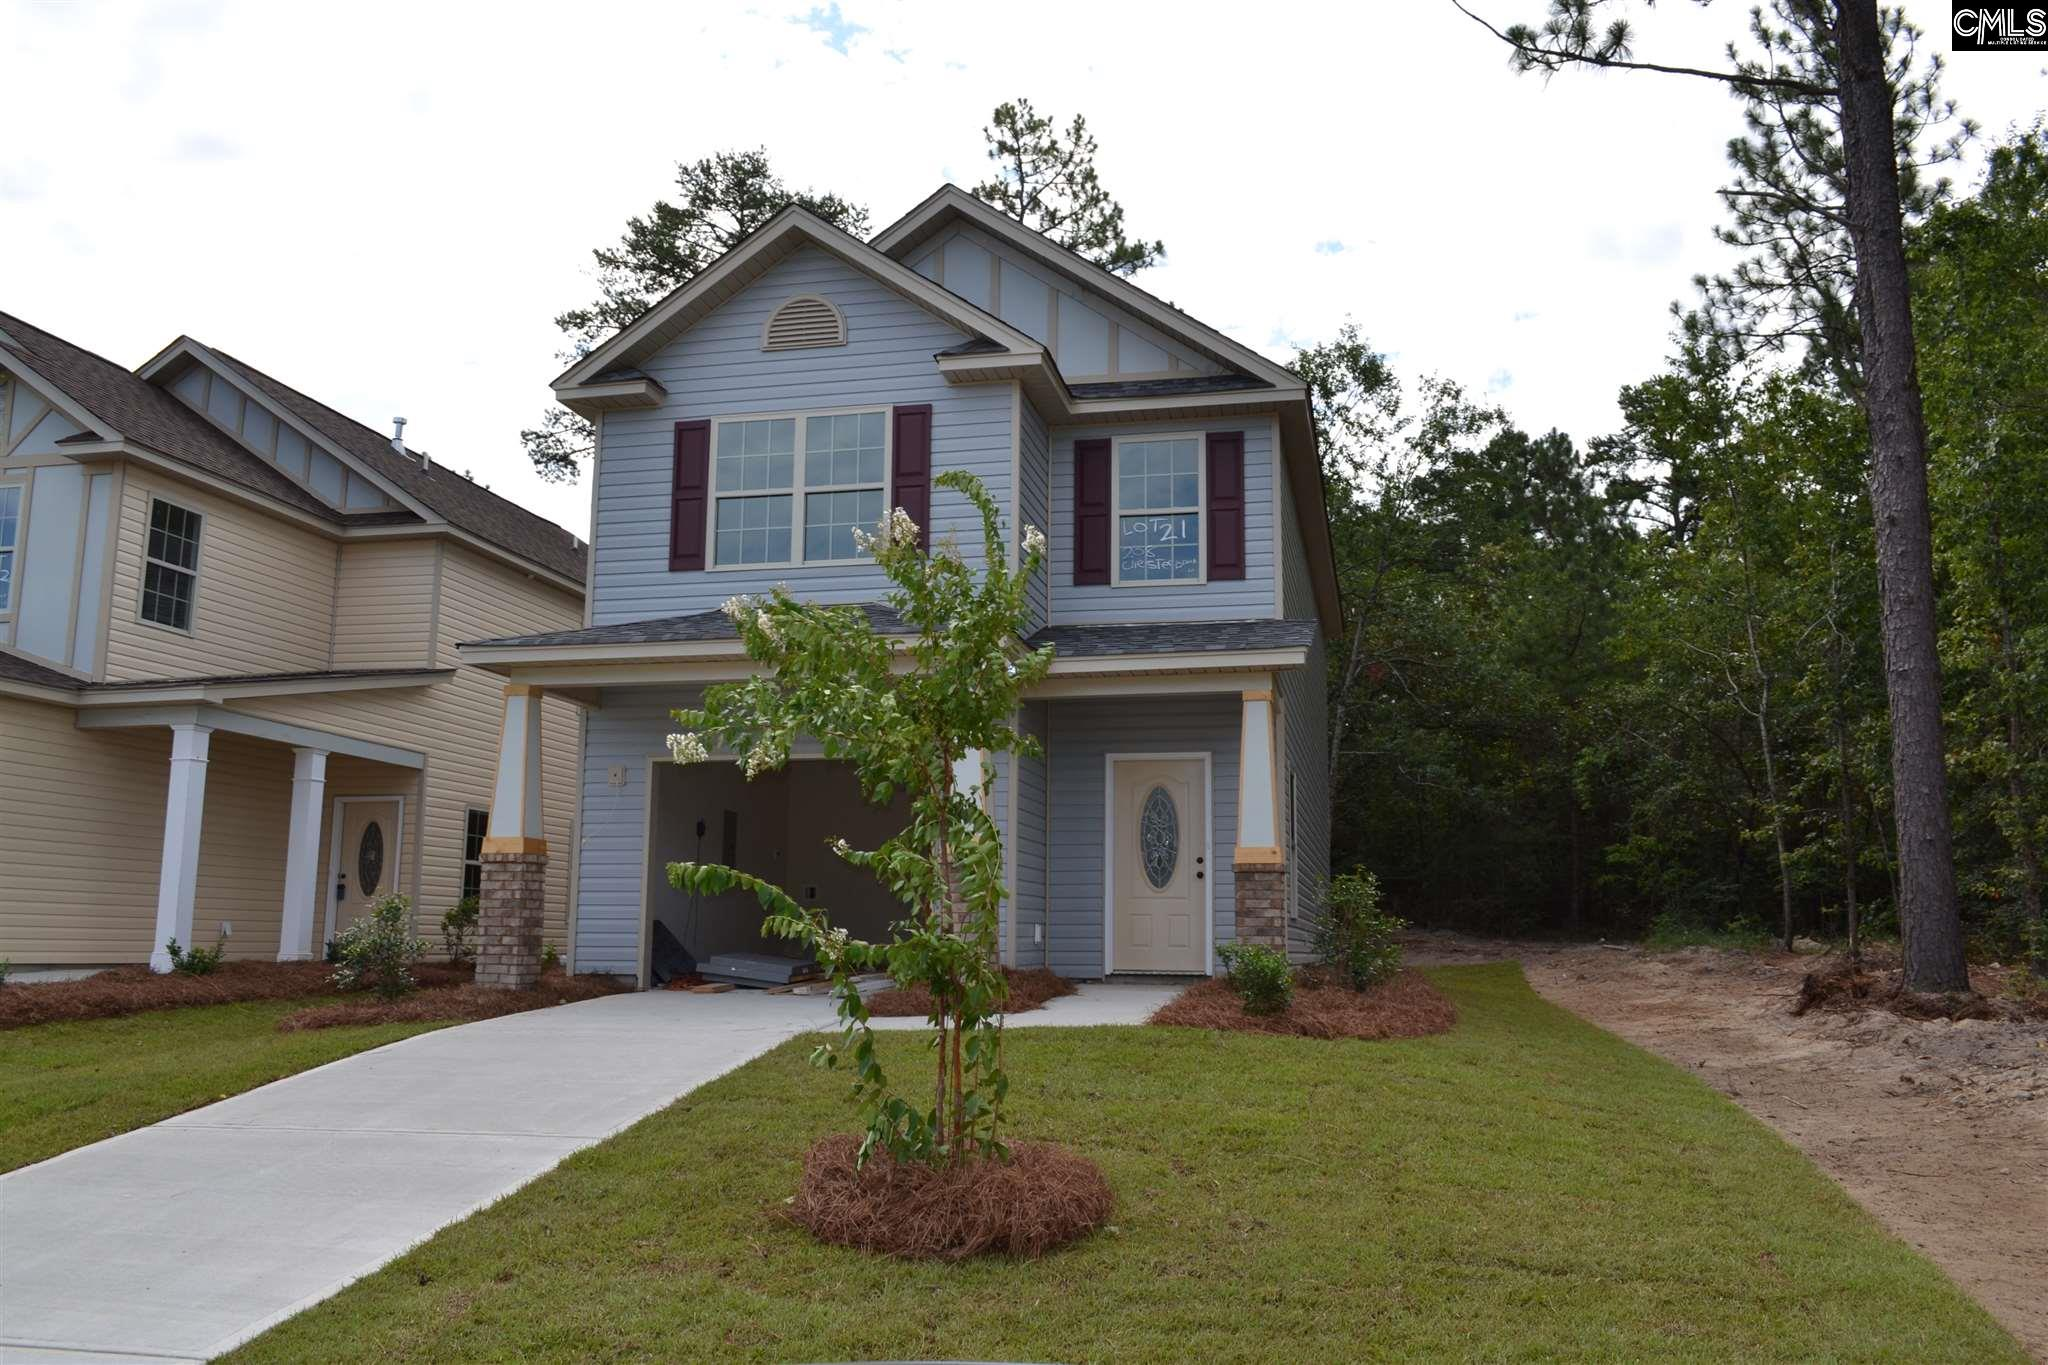 441 Ravenscroft #11B West Columbia, SC 29172